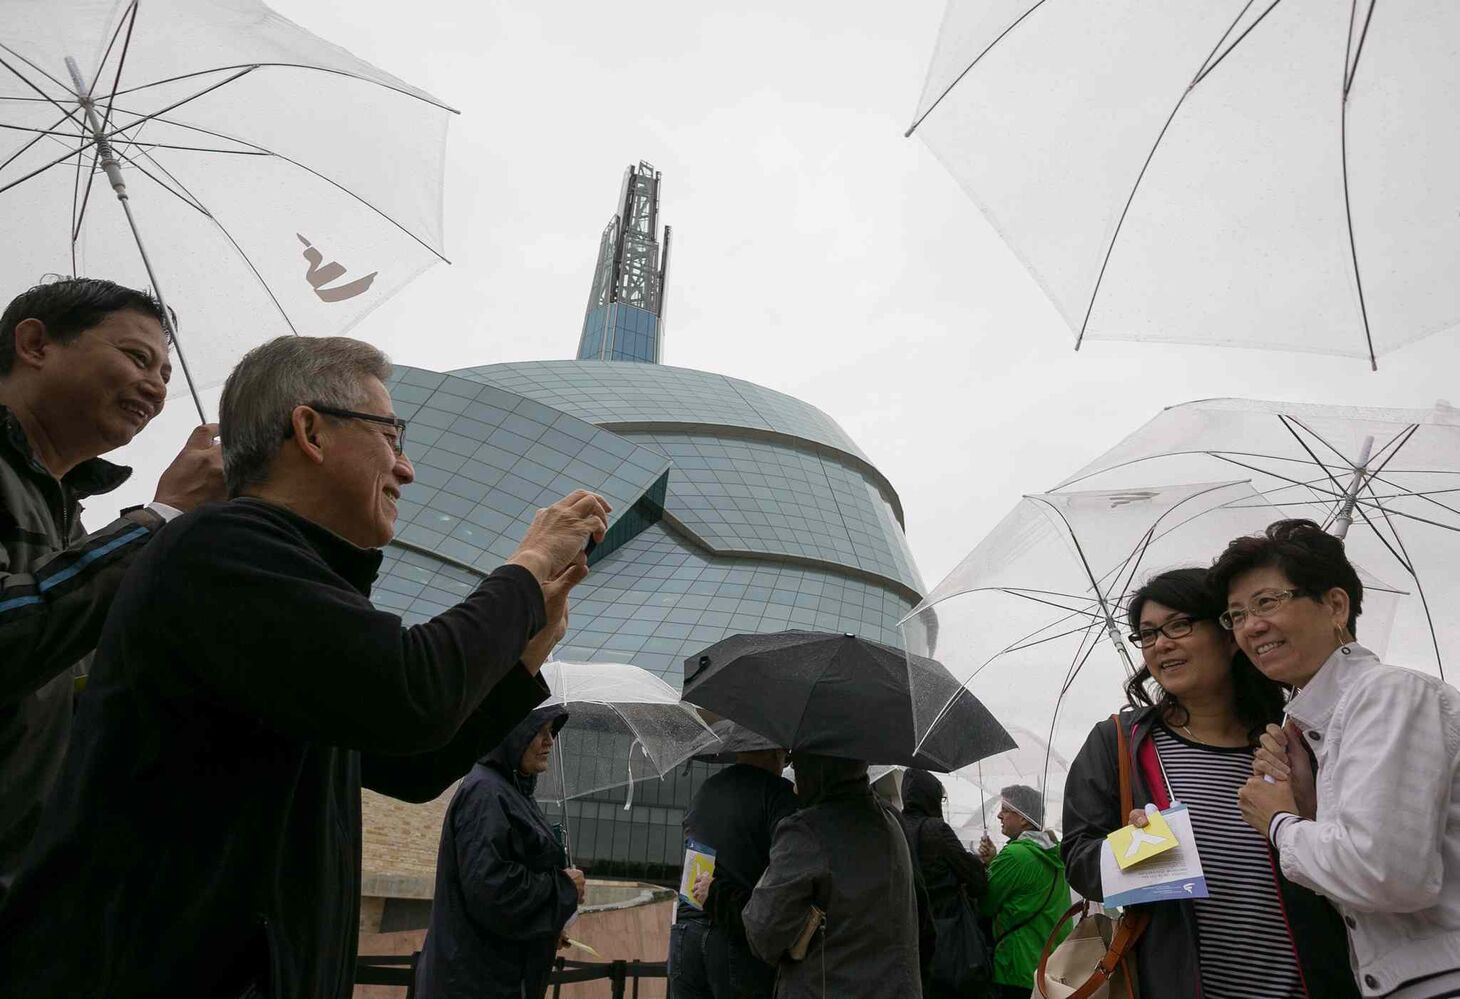 Frank Yong snaps a photo of his wife Teresa and her friend Jenny Lee, all from British Columbia, while they wait in the rain for their preview tour at the Canadian Museum for Human Rights on Saturday. The rain kept away some of the people with reserved tickets, allowing walk-ups to gain access to the guided tour of four of 11 galleries. The rest of galleries open Sept. 27. (Melissa Tait / Winnipeg Free Press)